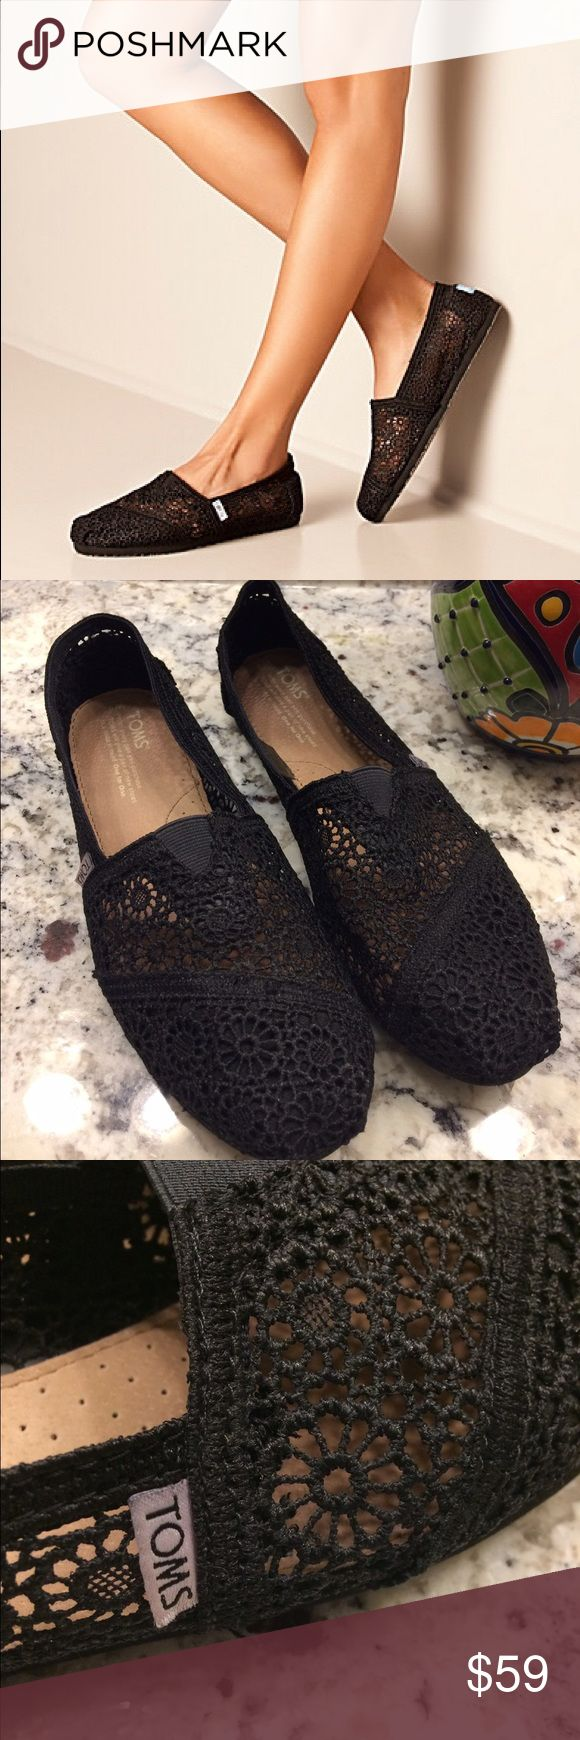 Crocheted Black TOMS Stay light on your feet in these Classics! Featuring a crocheted upper and more cushioning than ever, these slip-ons will be a warm-weather favorite. Worn once to run an errand. *Trying to Make Back Some of What I Paid but still Open to Reasonable Offers* TOMS Shoes